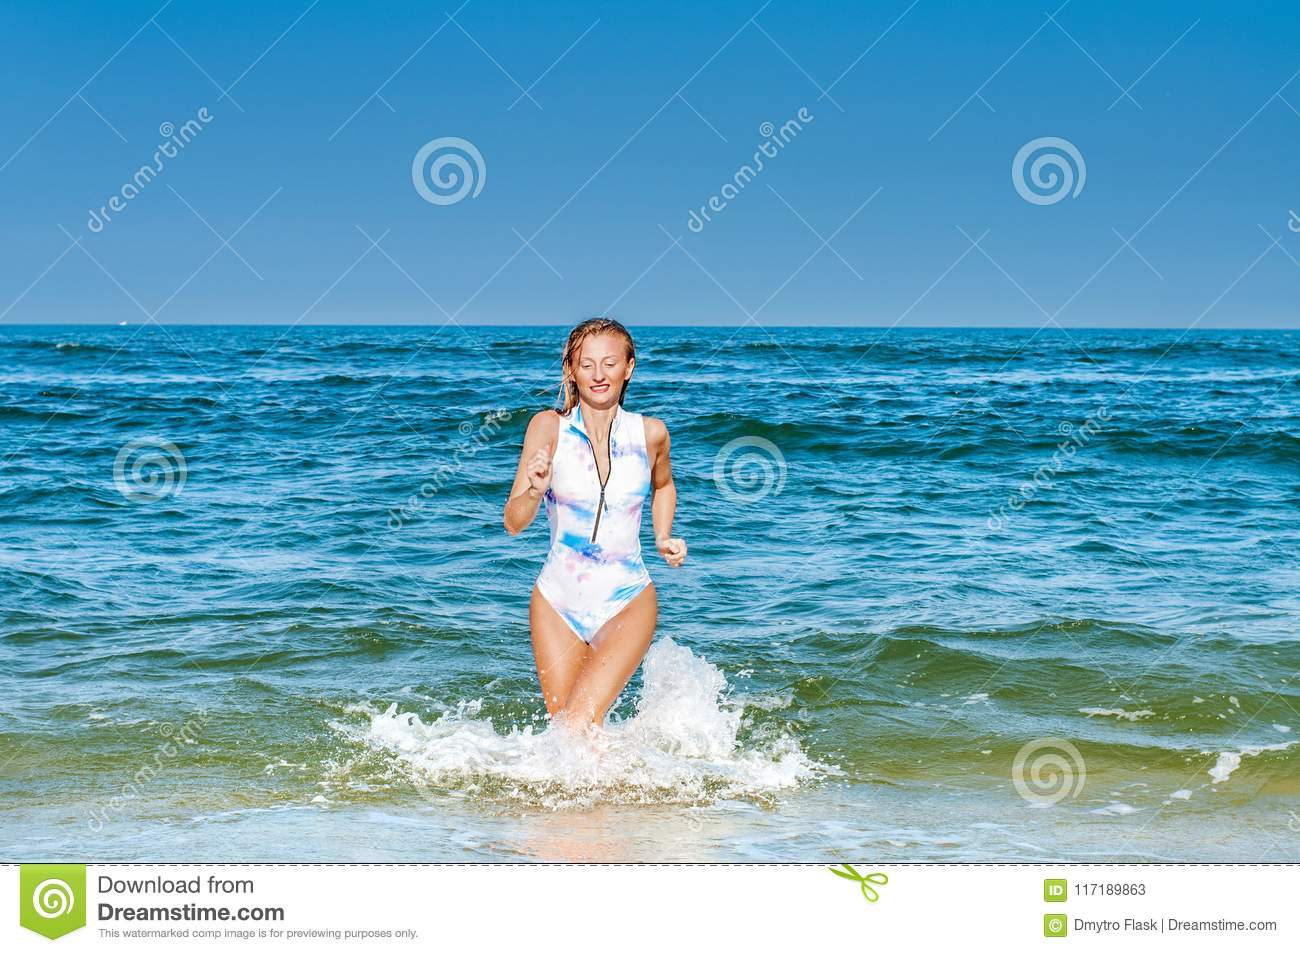 Summer. Beautiful tanned woman in swimsuit is coming out of the ocean